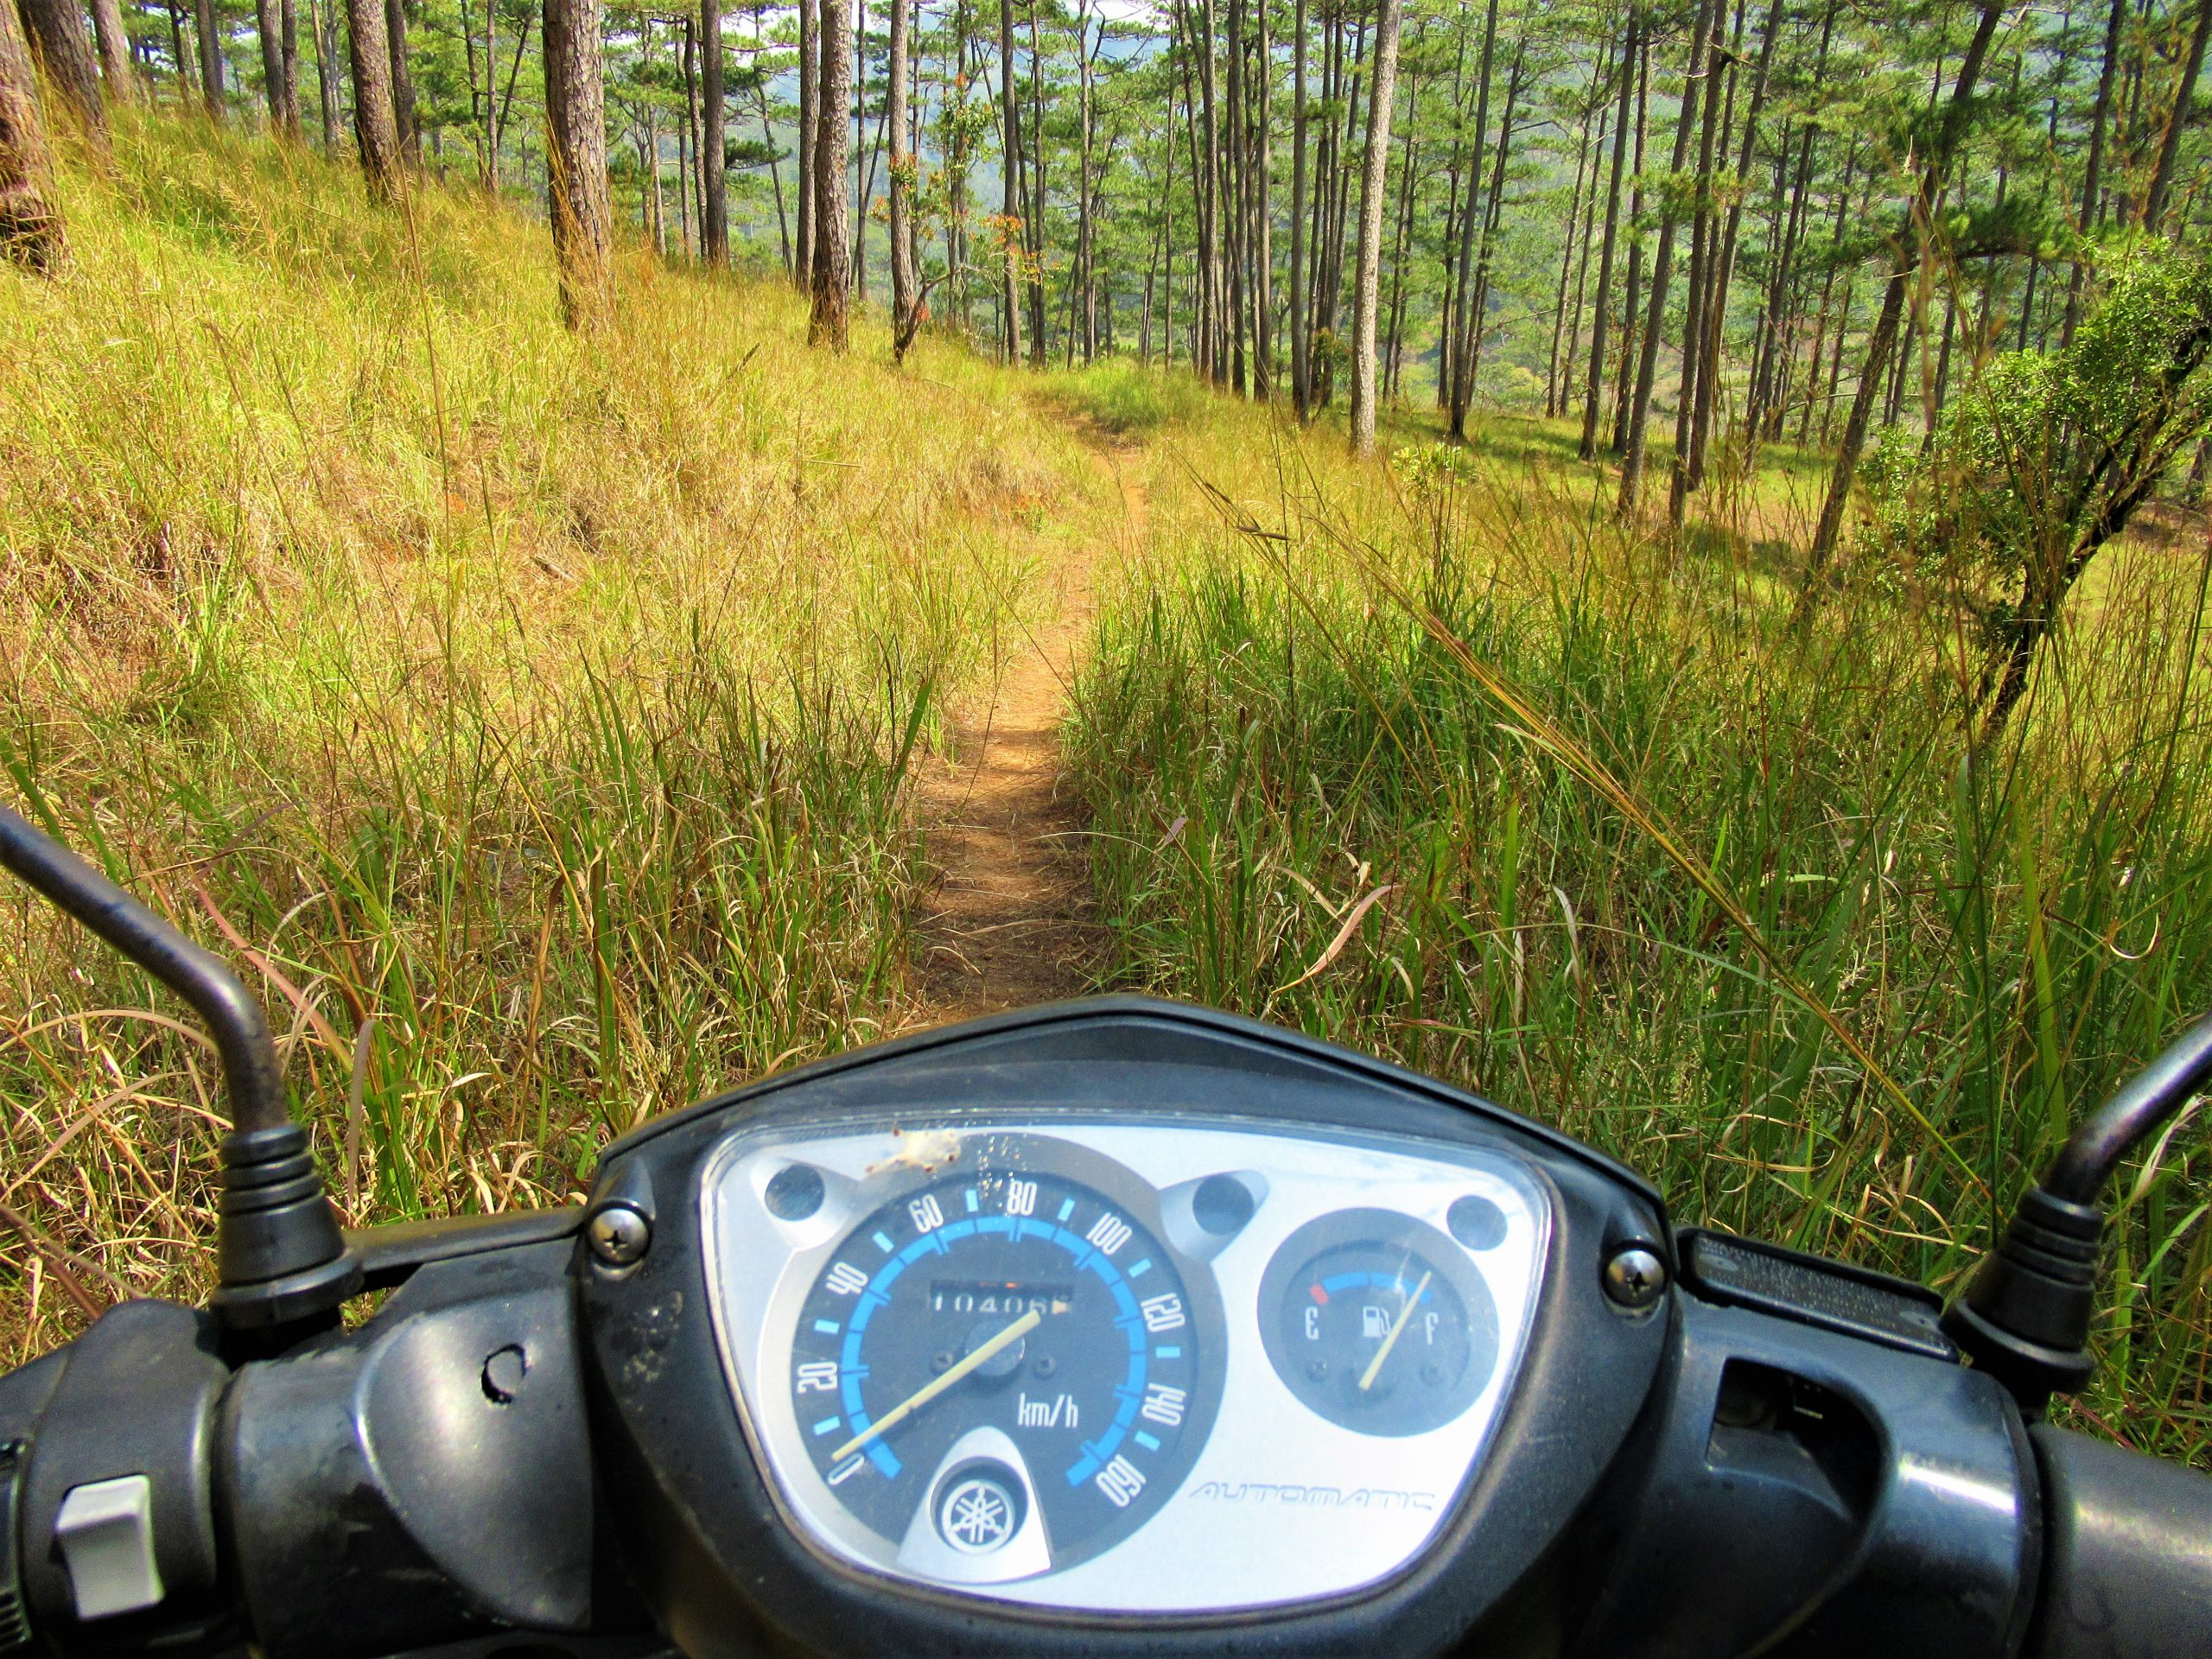 Motocamping in the Da Nhim pine forests, Central Highlands